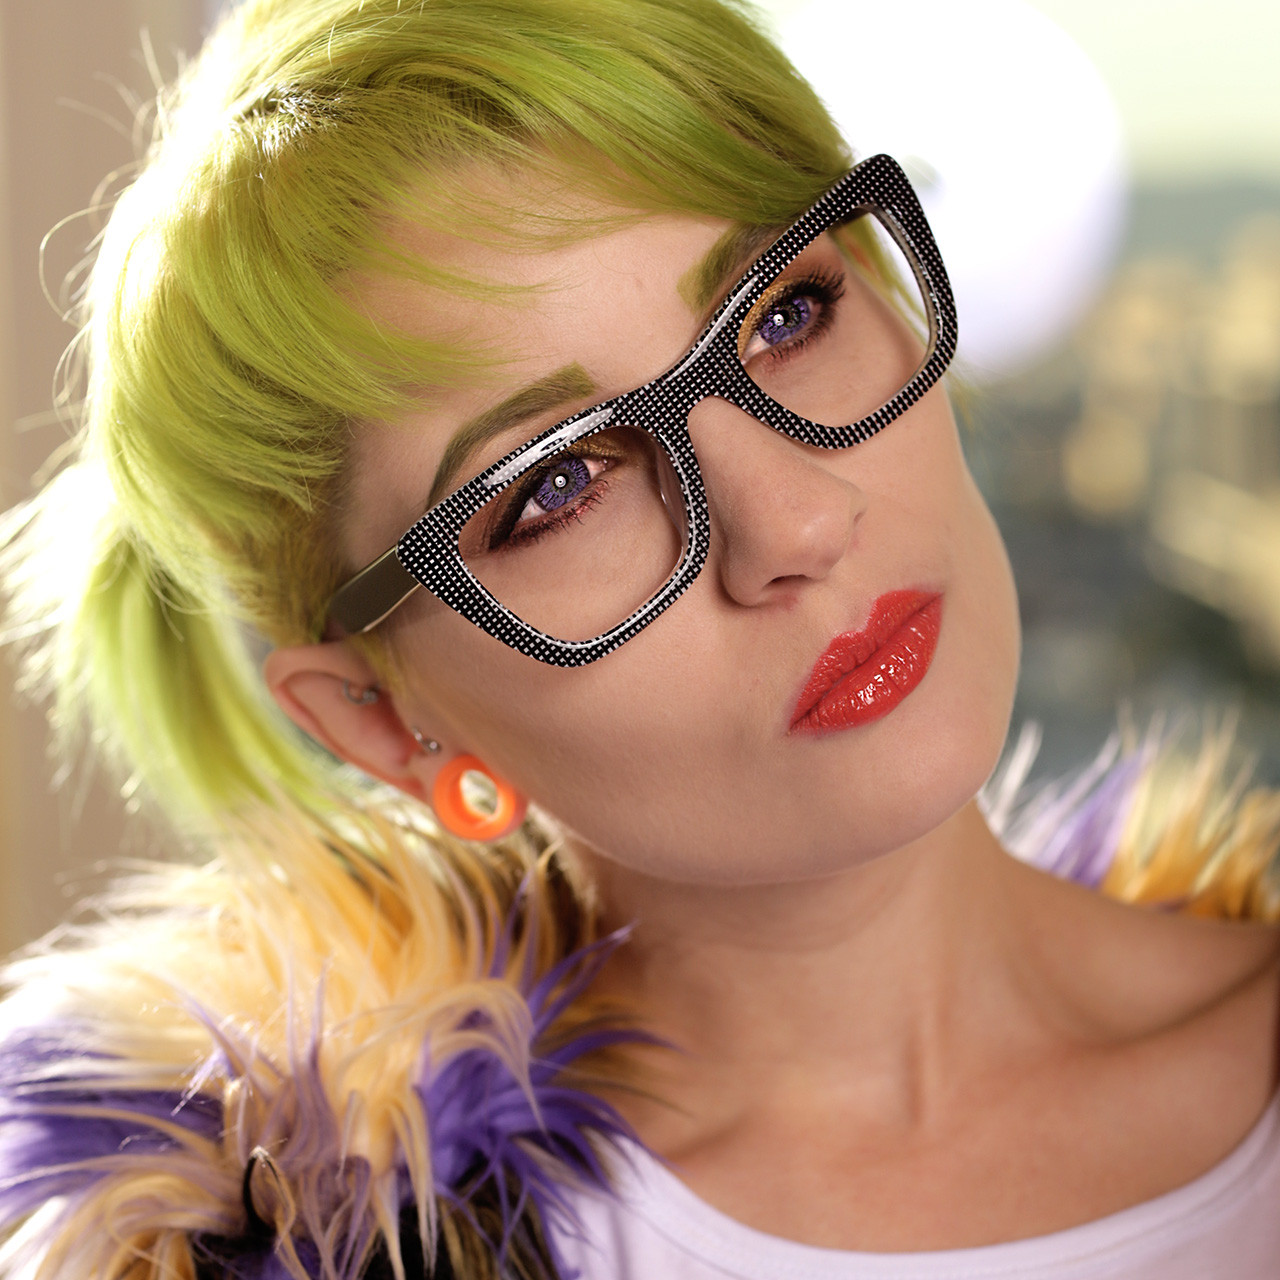 GEEK Couture Style Paris Eyeglasses